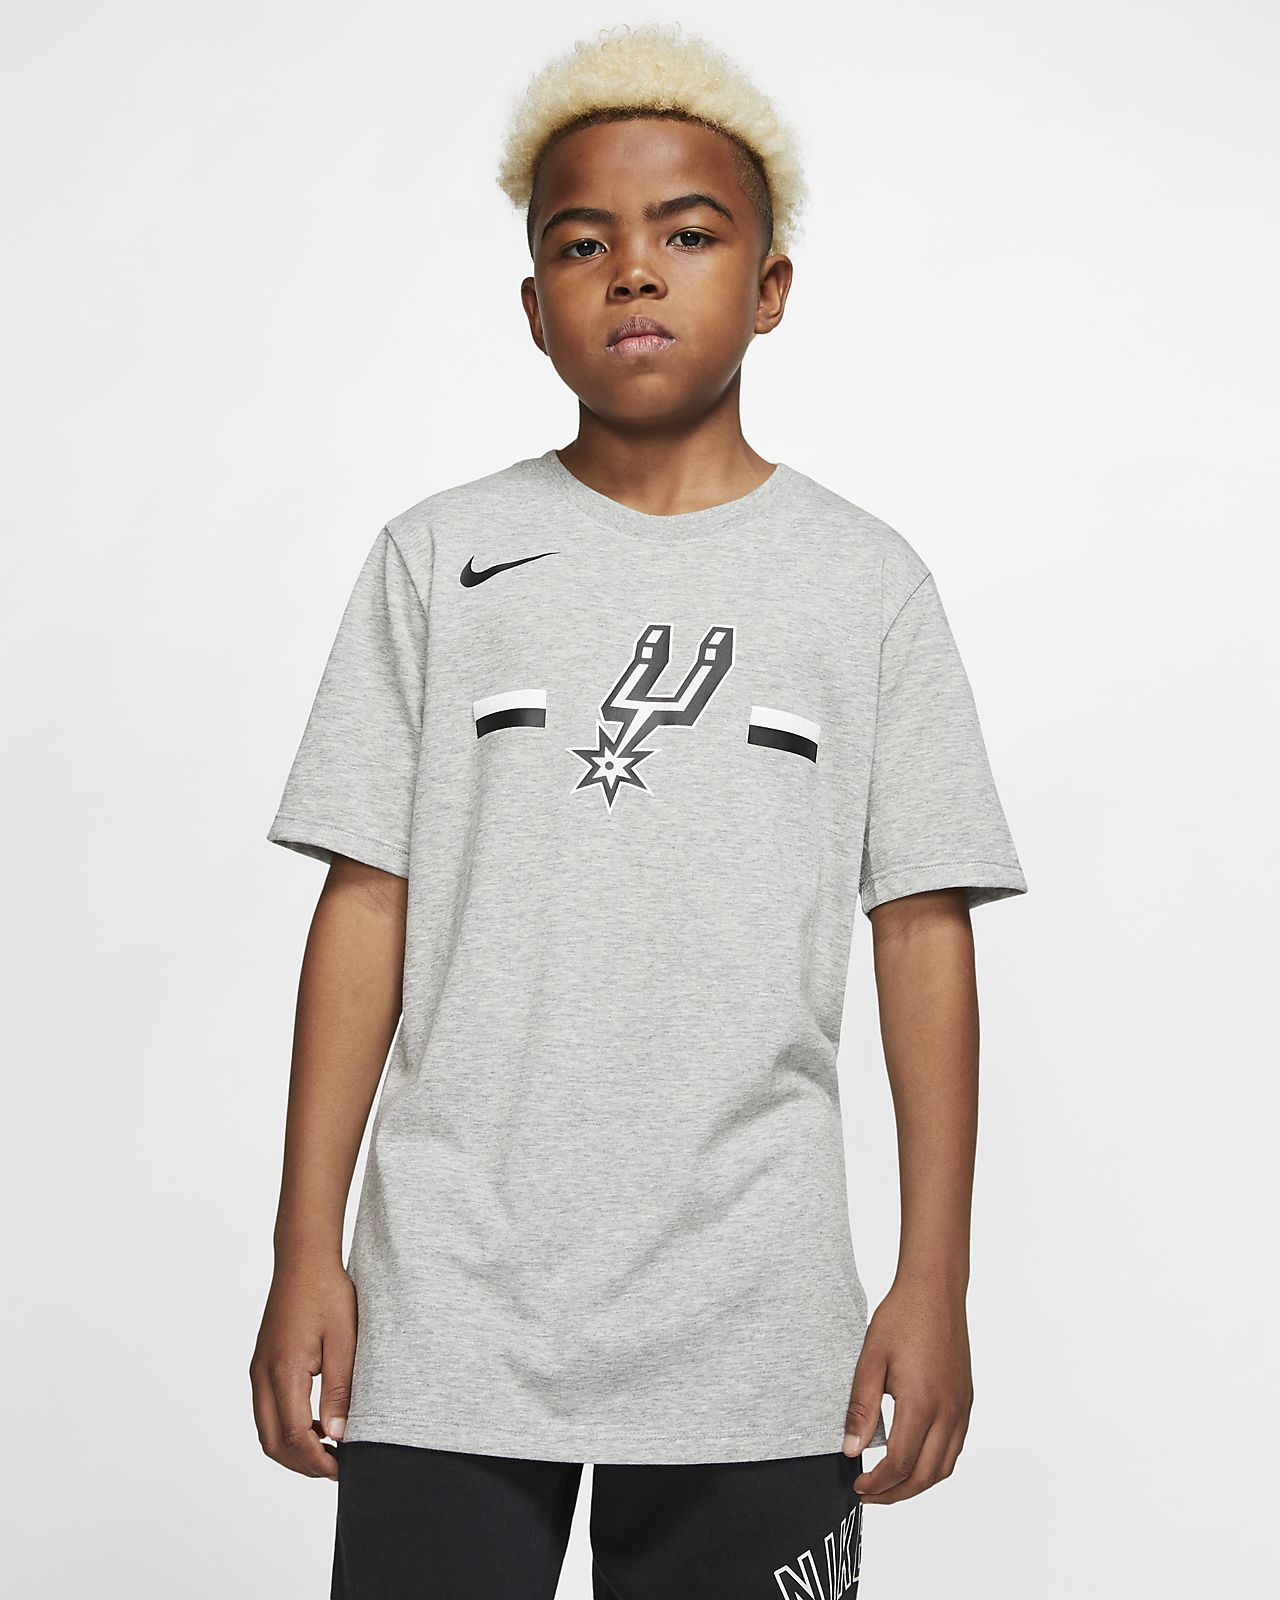 San Antonio Spurs Nike Dri-FIT Logo Big Kids' NBA T-Shirt